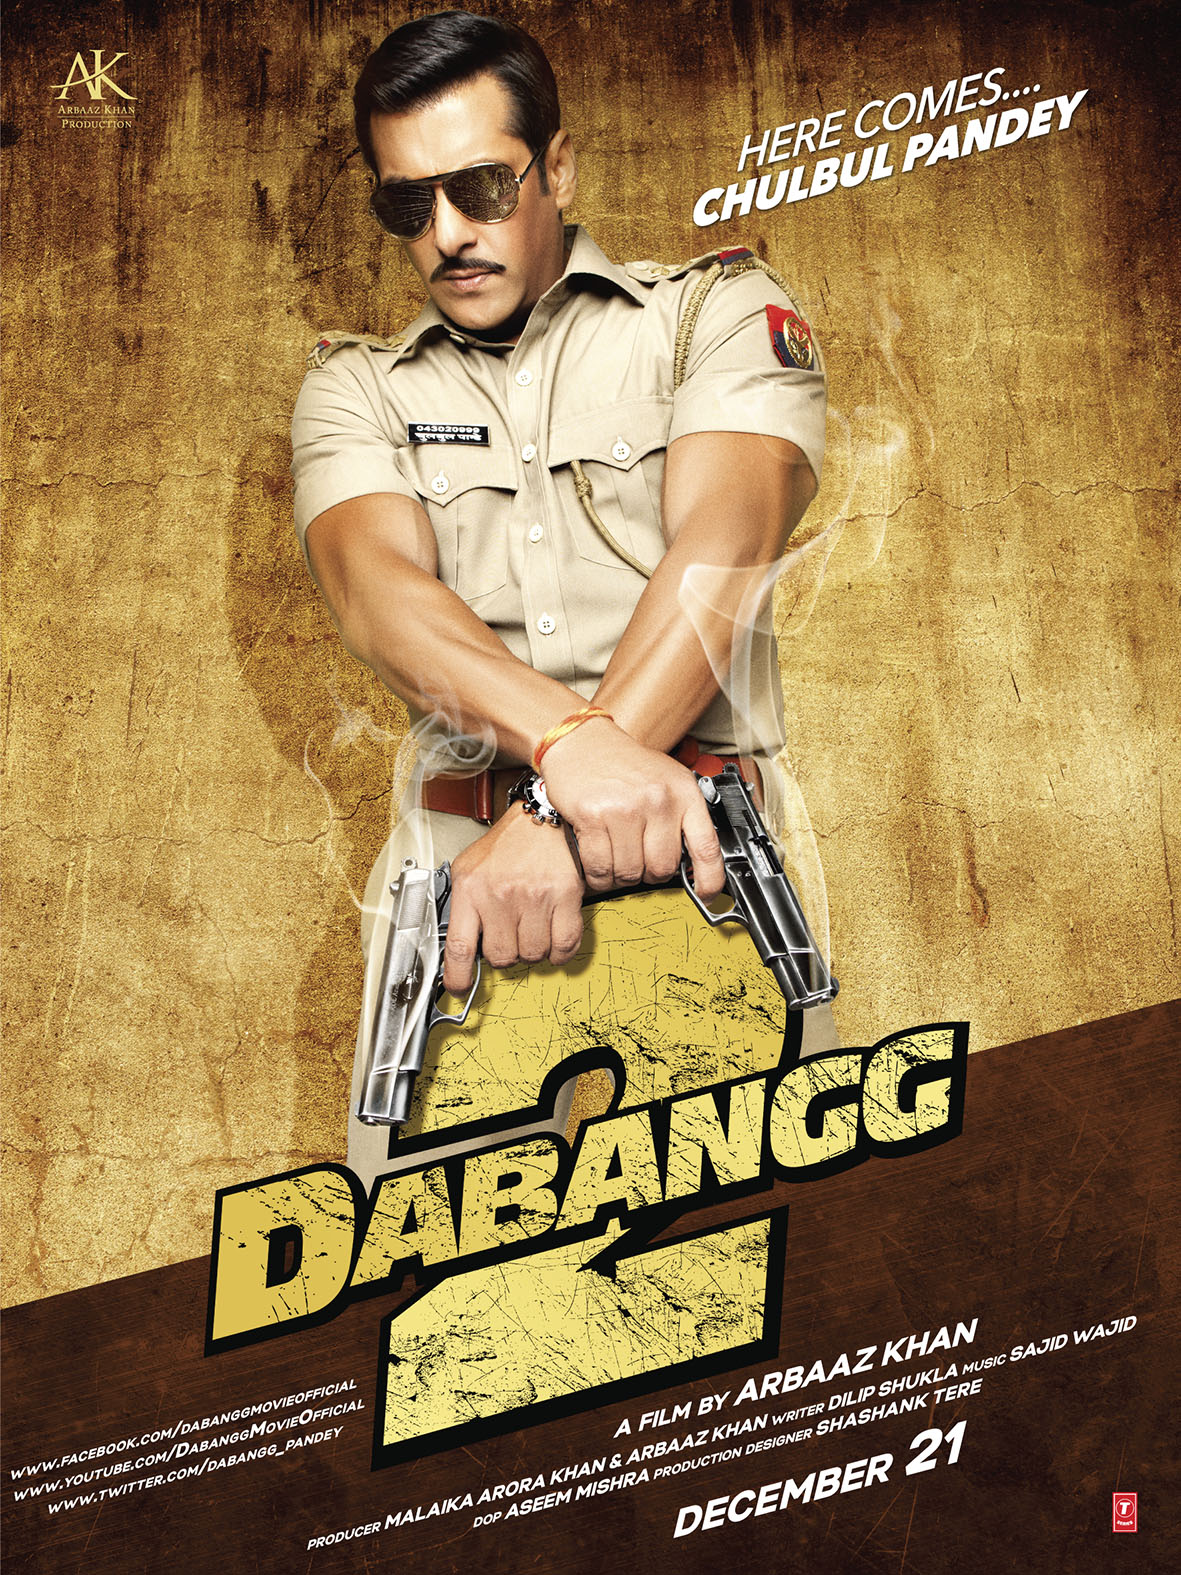 Dabangg 2 Picture 7  Dabangg 2 Movie Poster